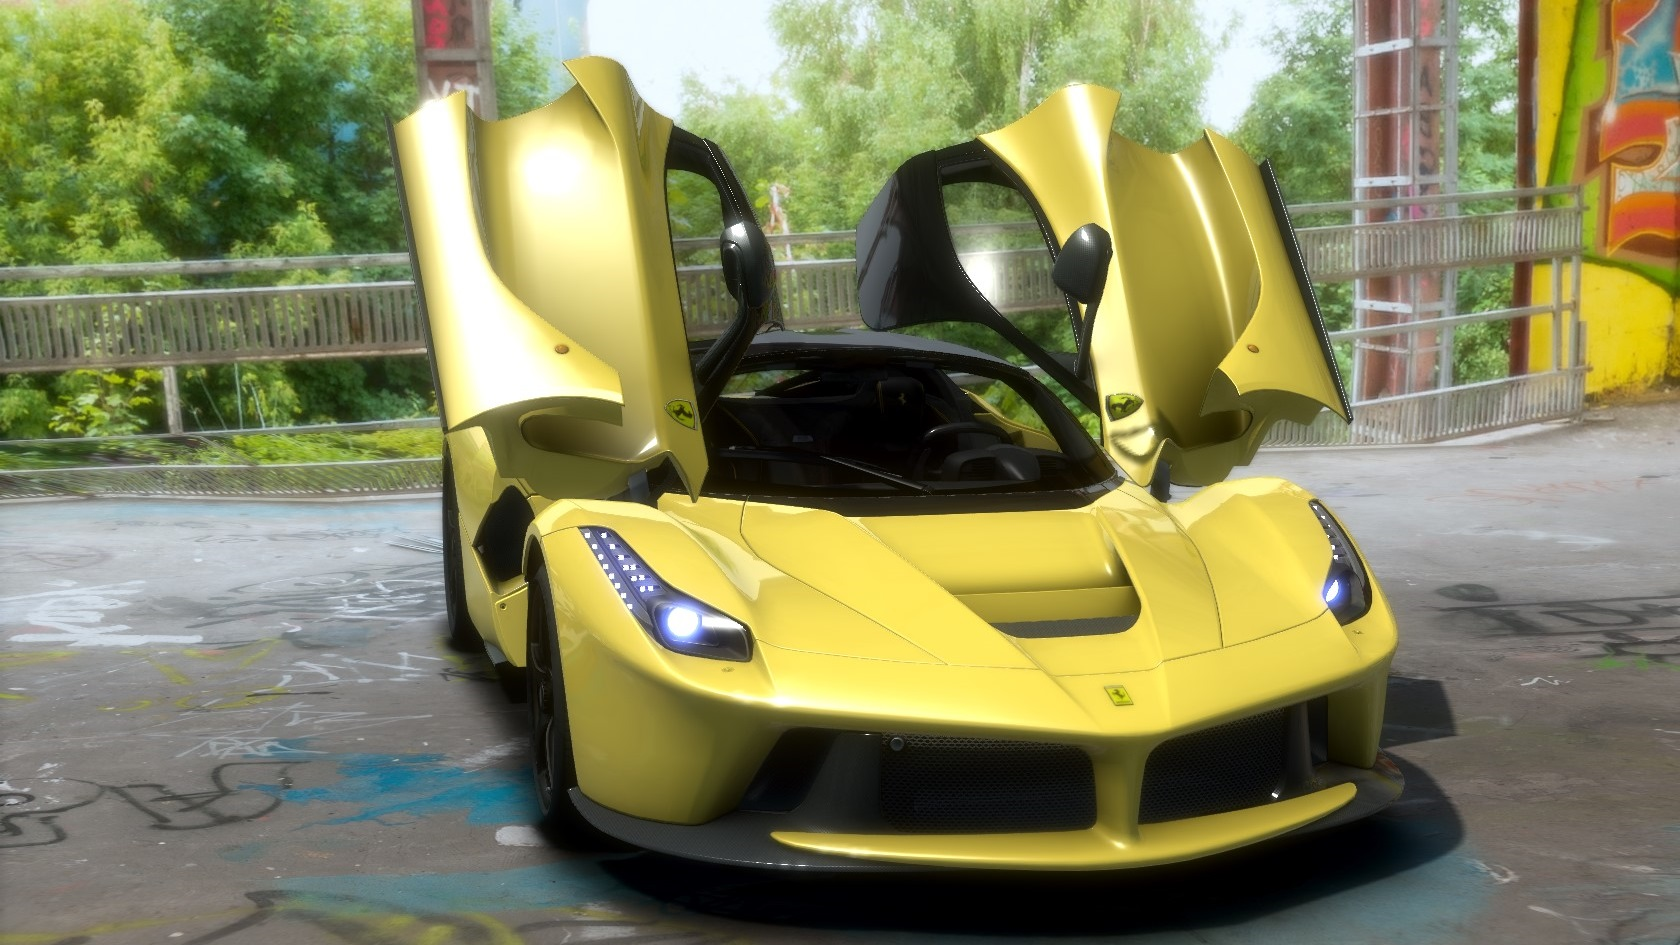 Showroom_ferrari_laferrari_7-1-2015-19-7-17.jpg